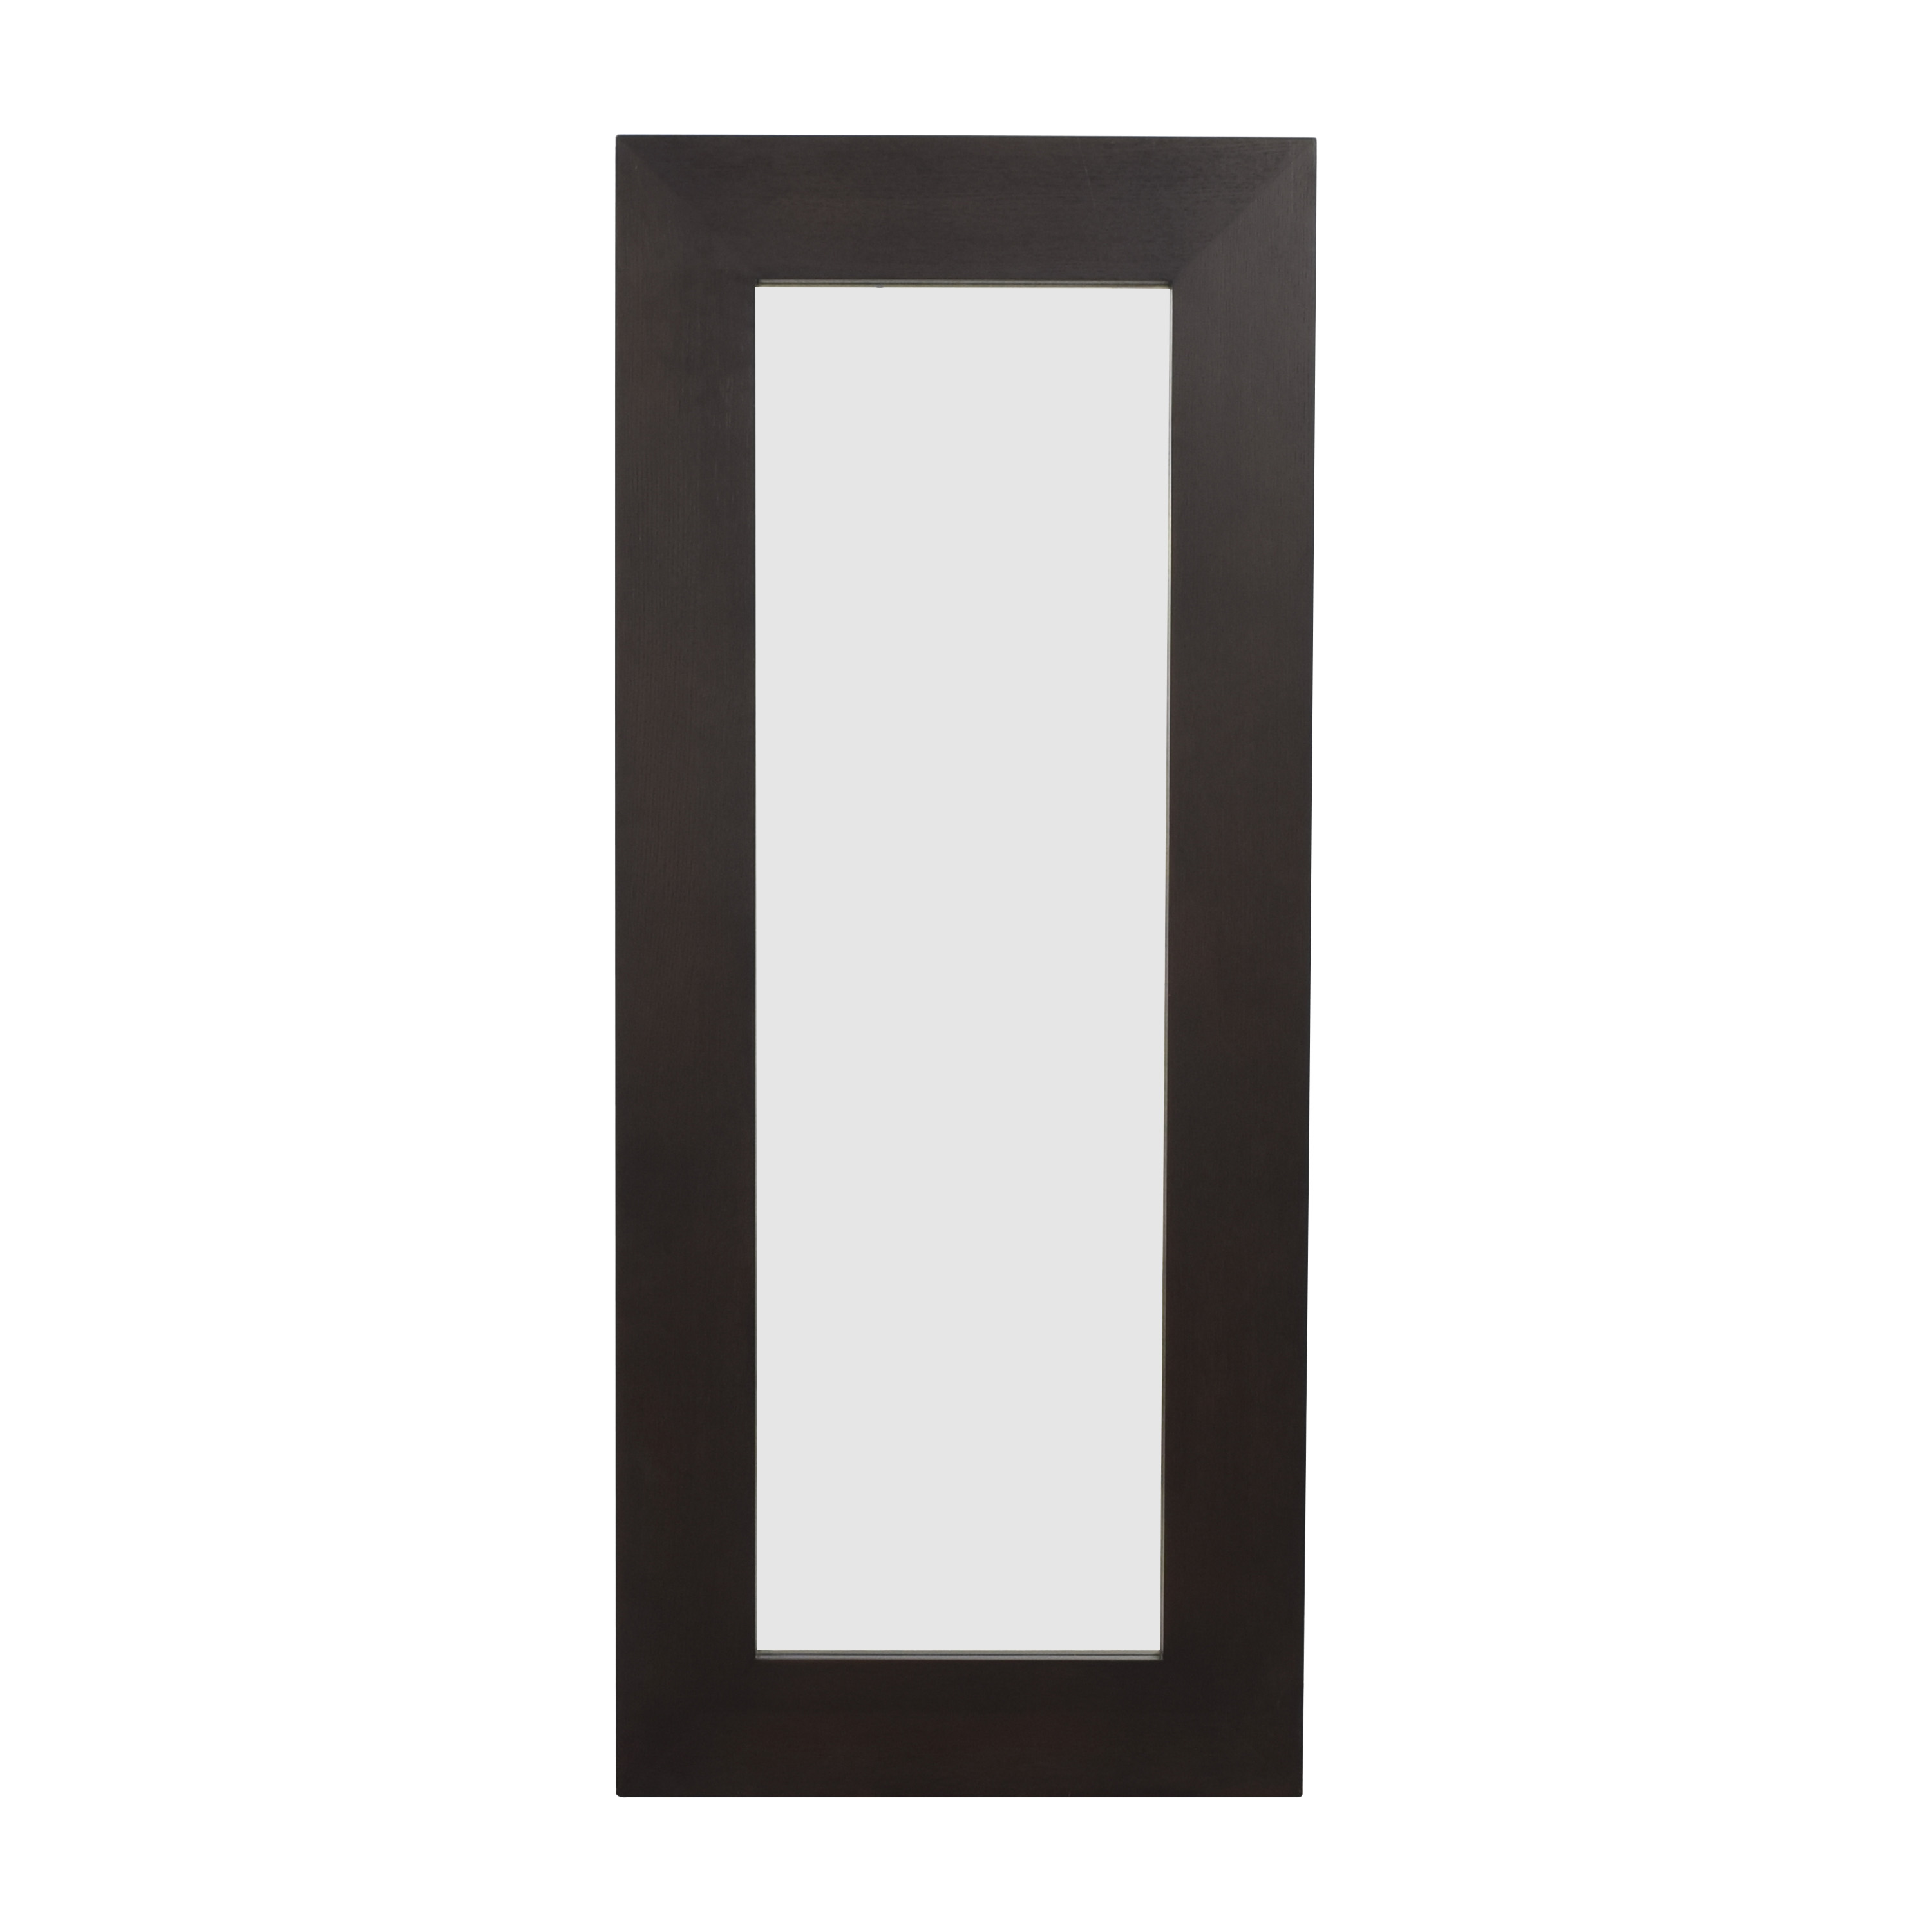 West Elm West Elm Chunky Floor Mirror Decor